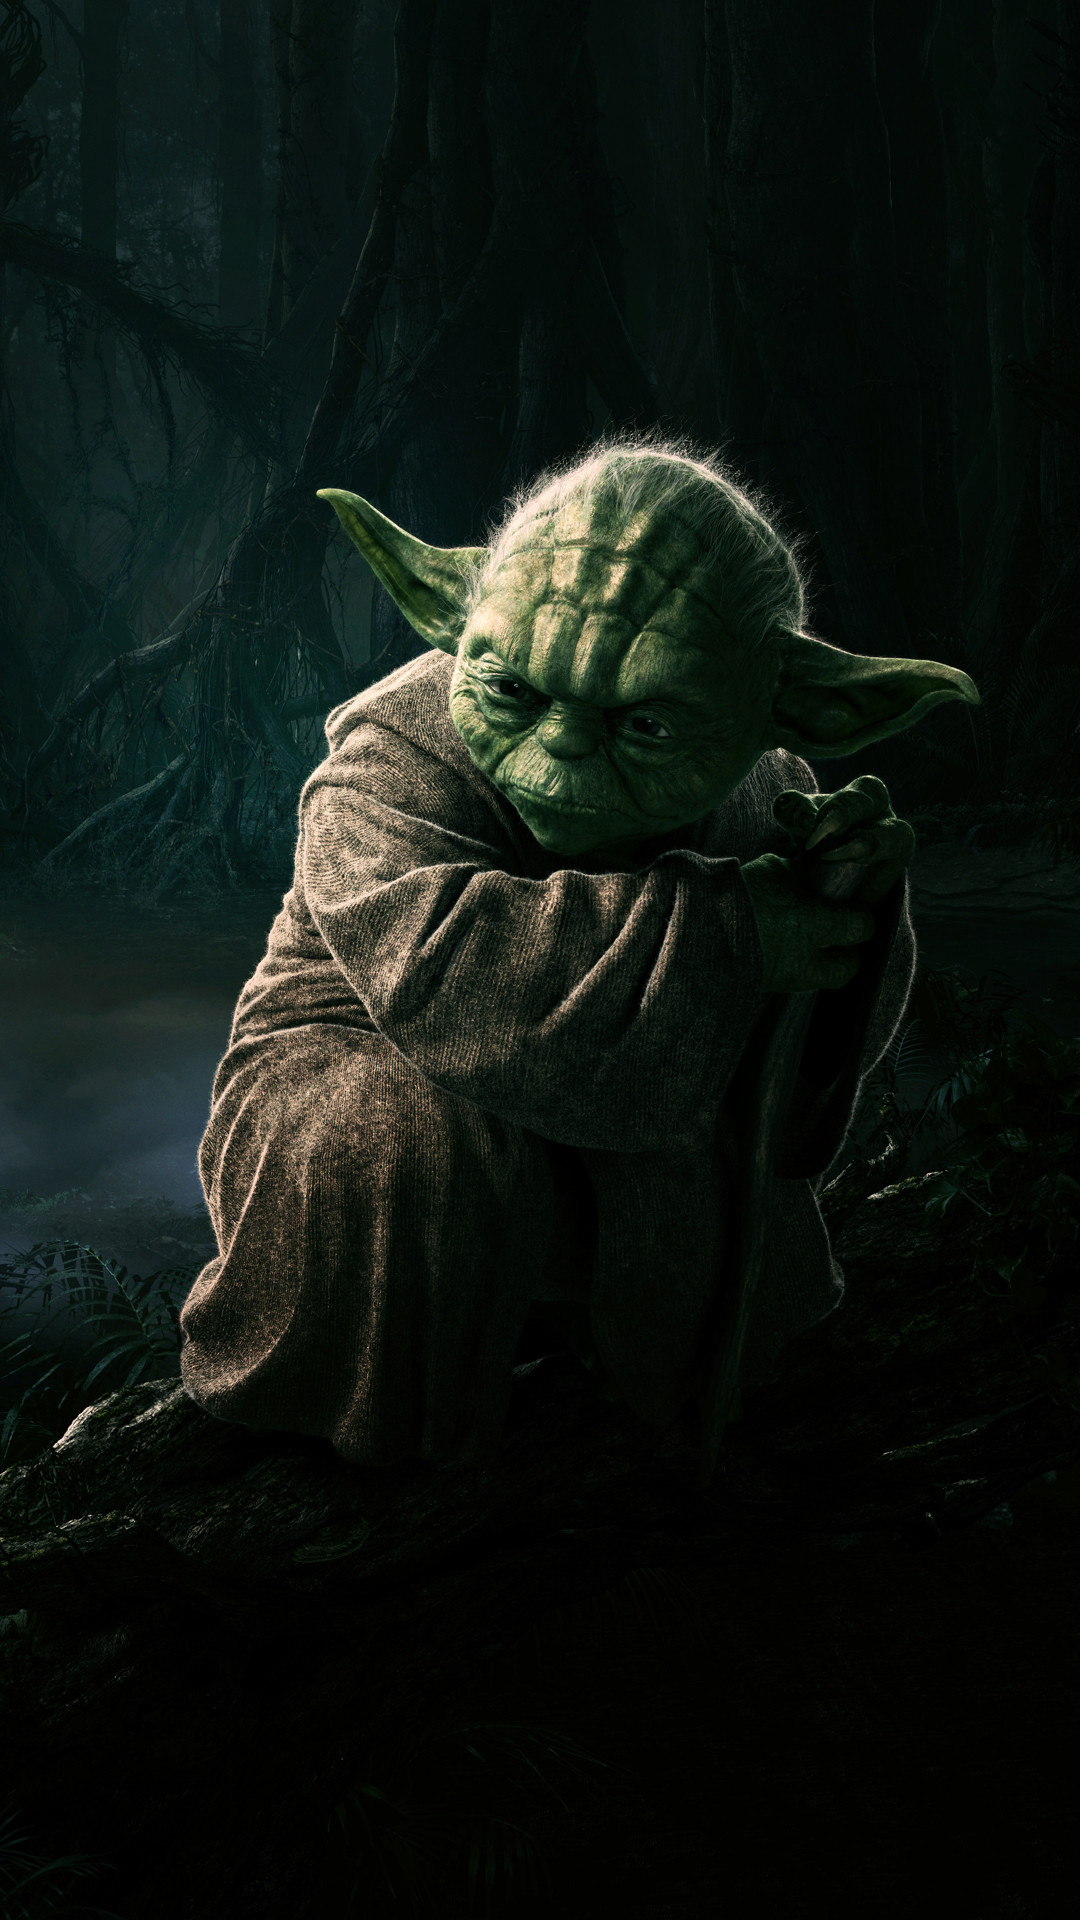 Star Wars Wallpaper for iphone 5. iPhone 6 · iPhone 6 PLUS